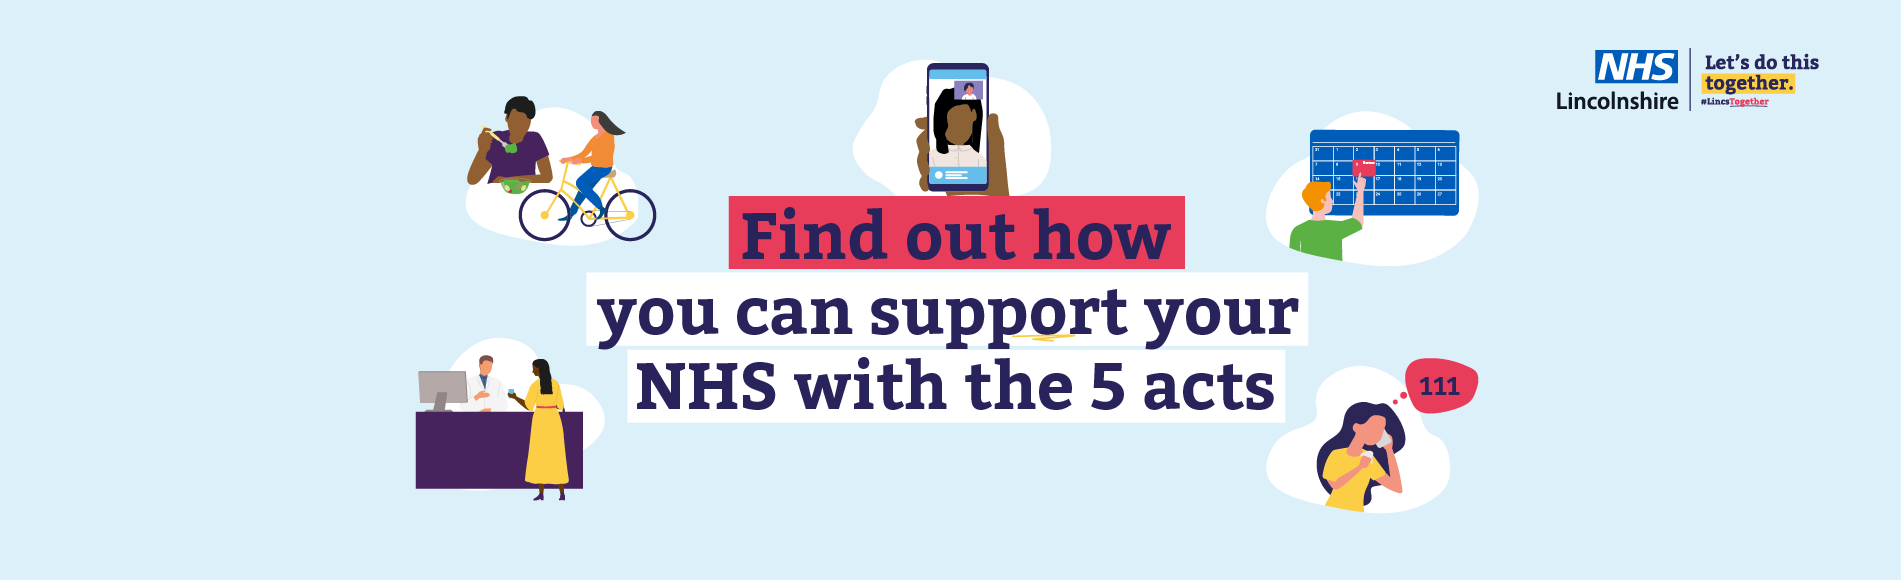 Let's Do This Together campaign - find out how you can support your NHS with the 5 acts